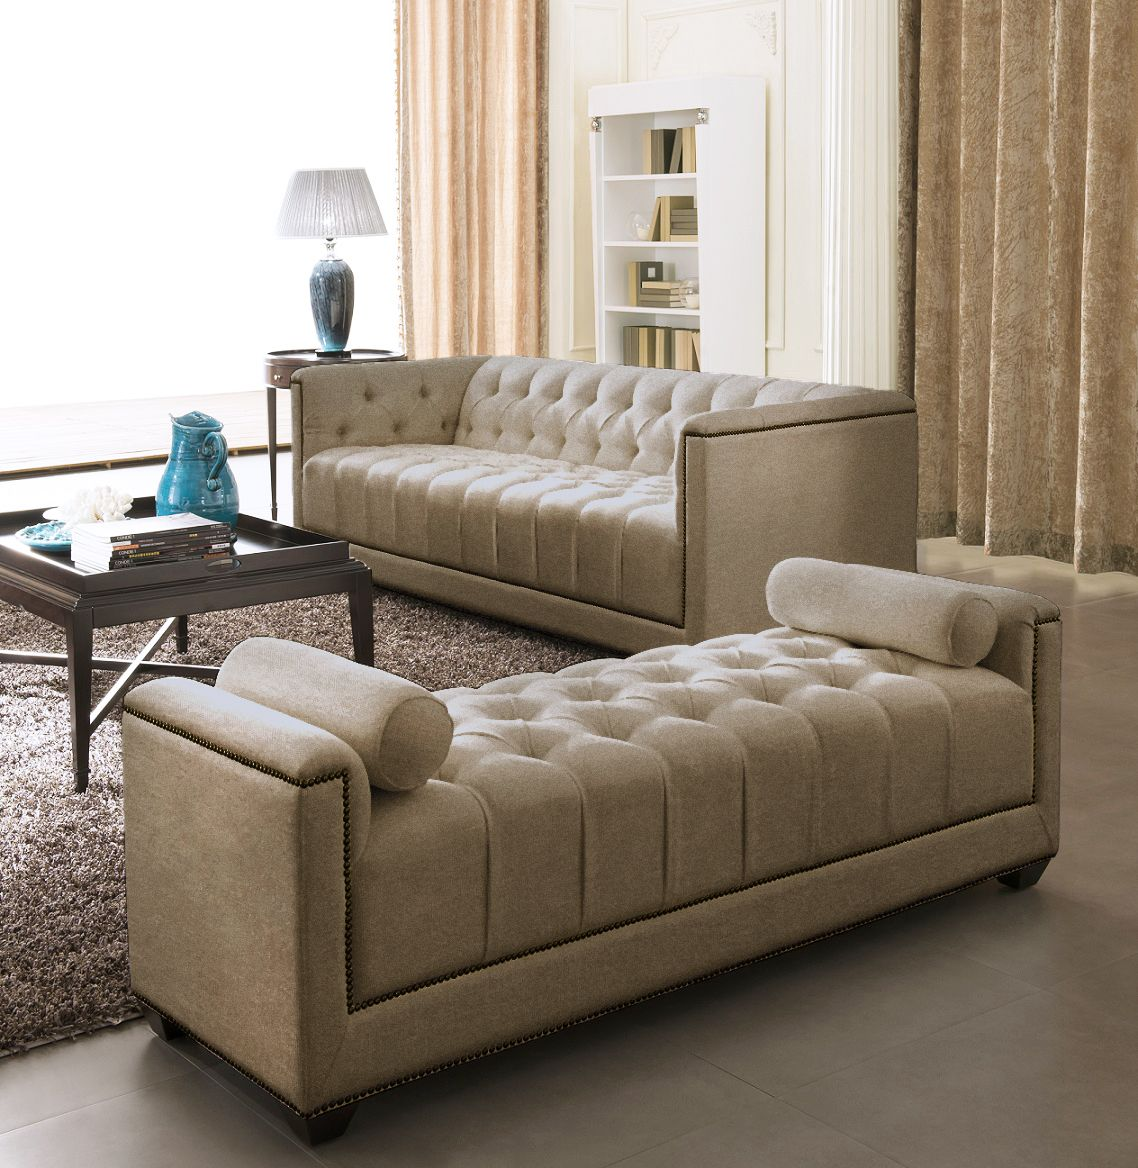 Modern Sofa Set Designs For Living Room Vijay Living Room Sofa